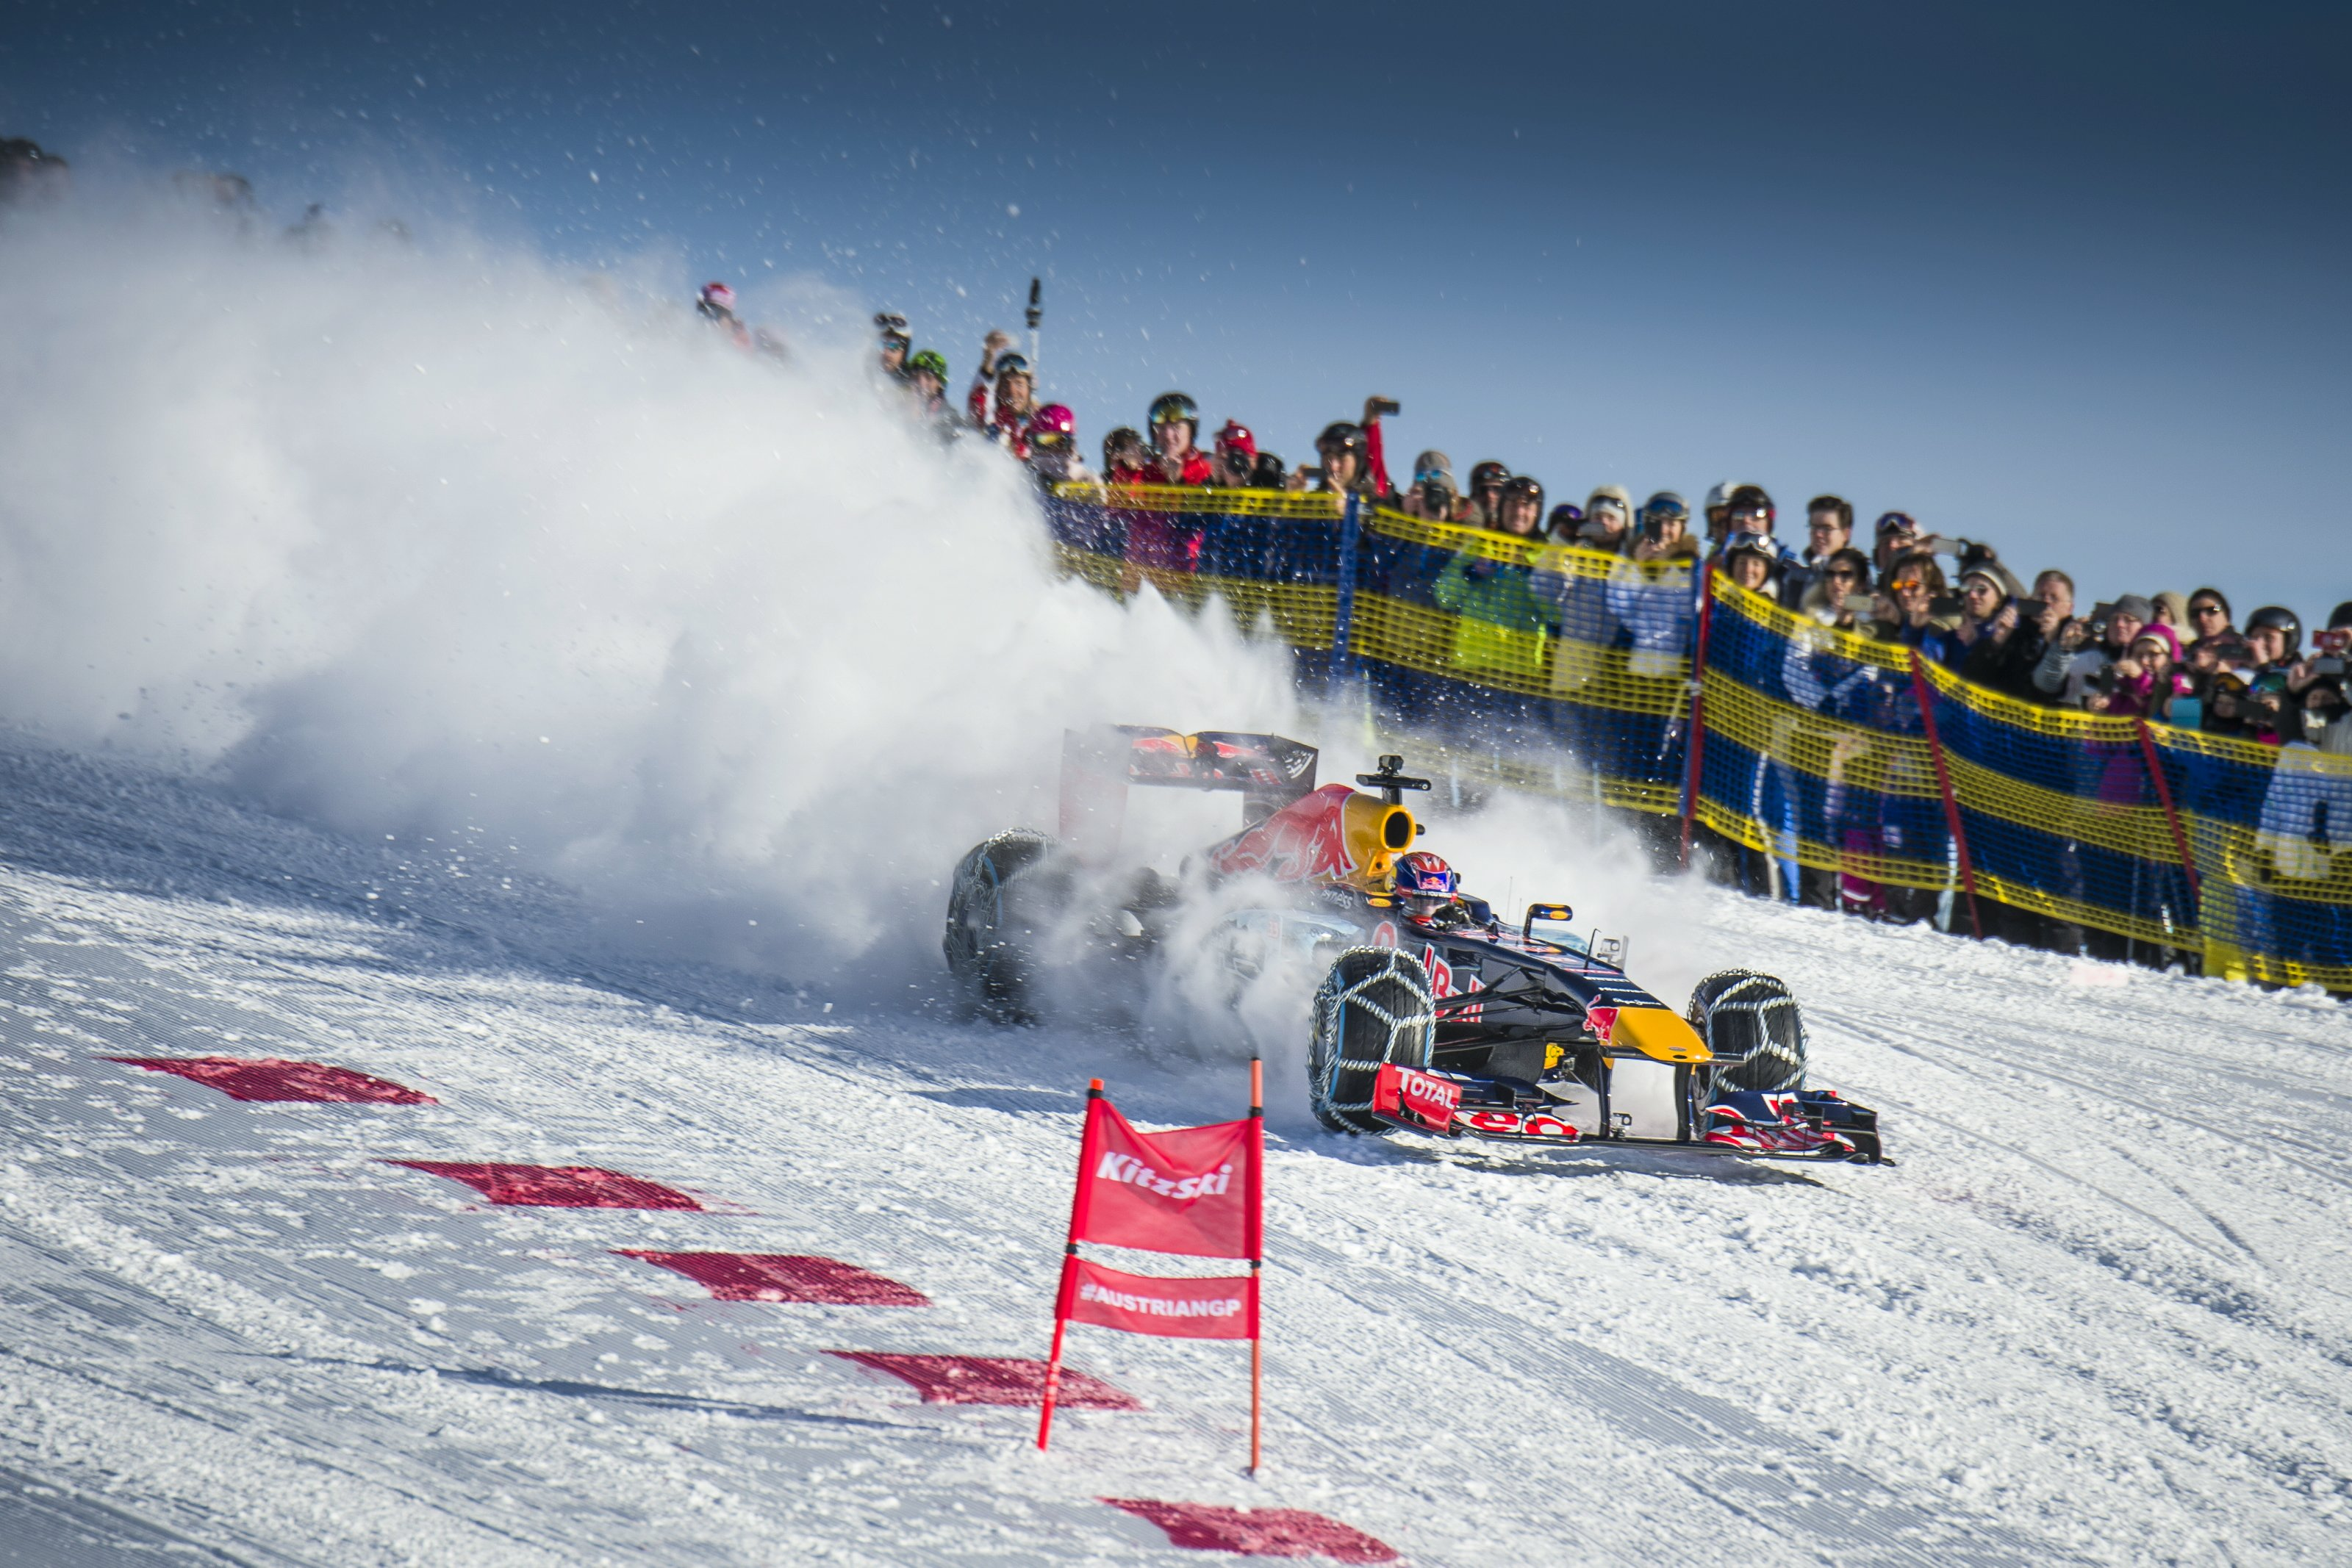 Watch A Red Bull Formula 1 Car Charge A Snowy Mountain